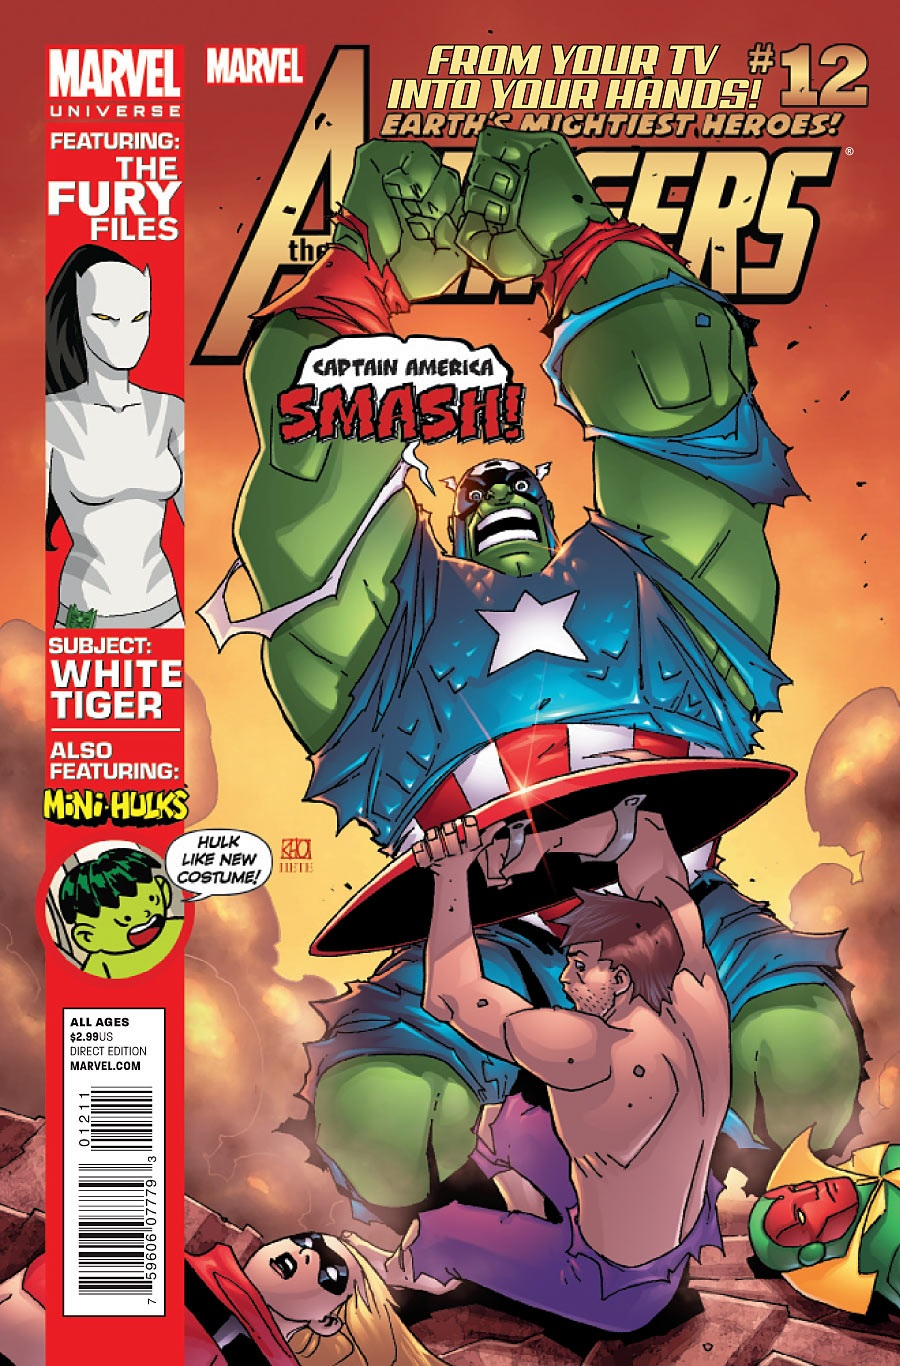 Marvel Universe: Avengers - Earth's Mightiest Heroes Vol 1 12